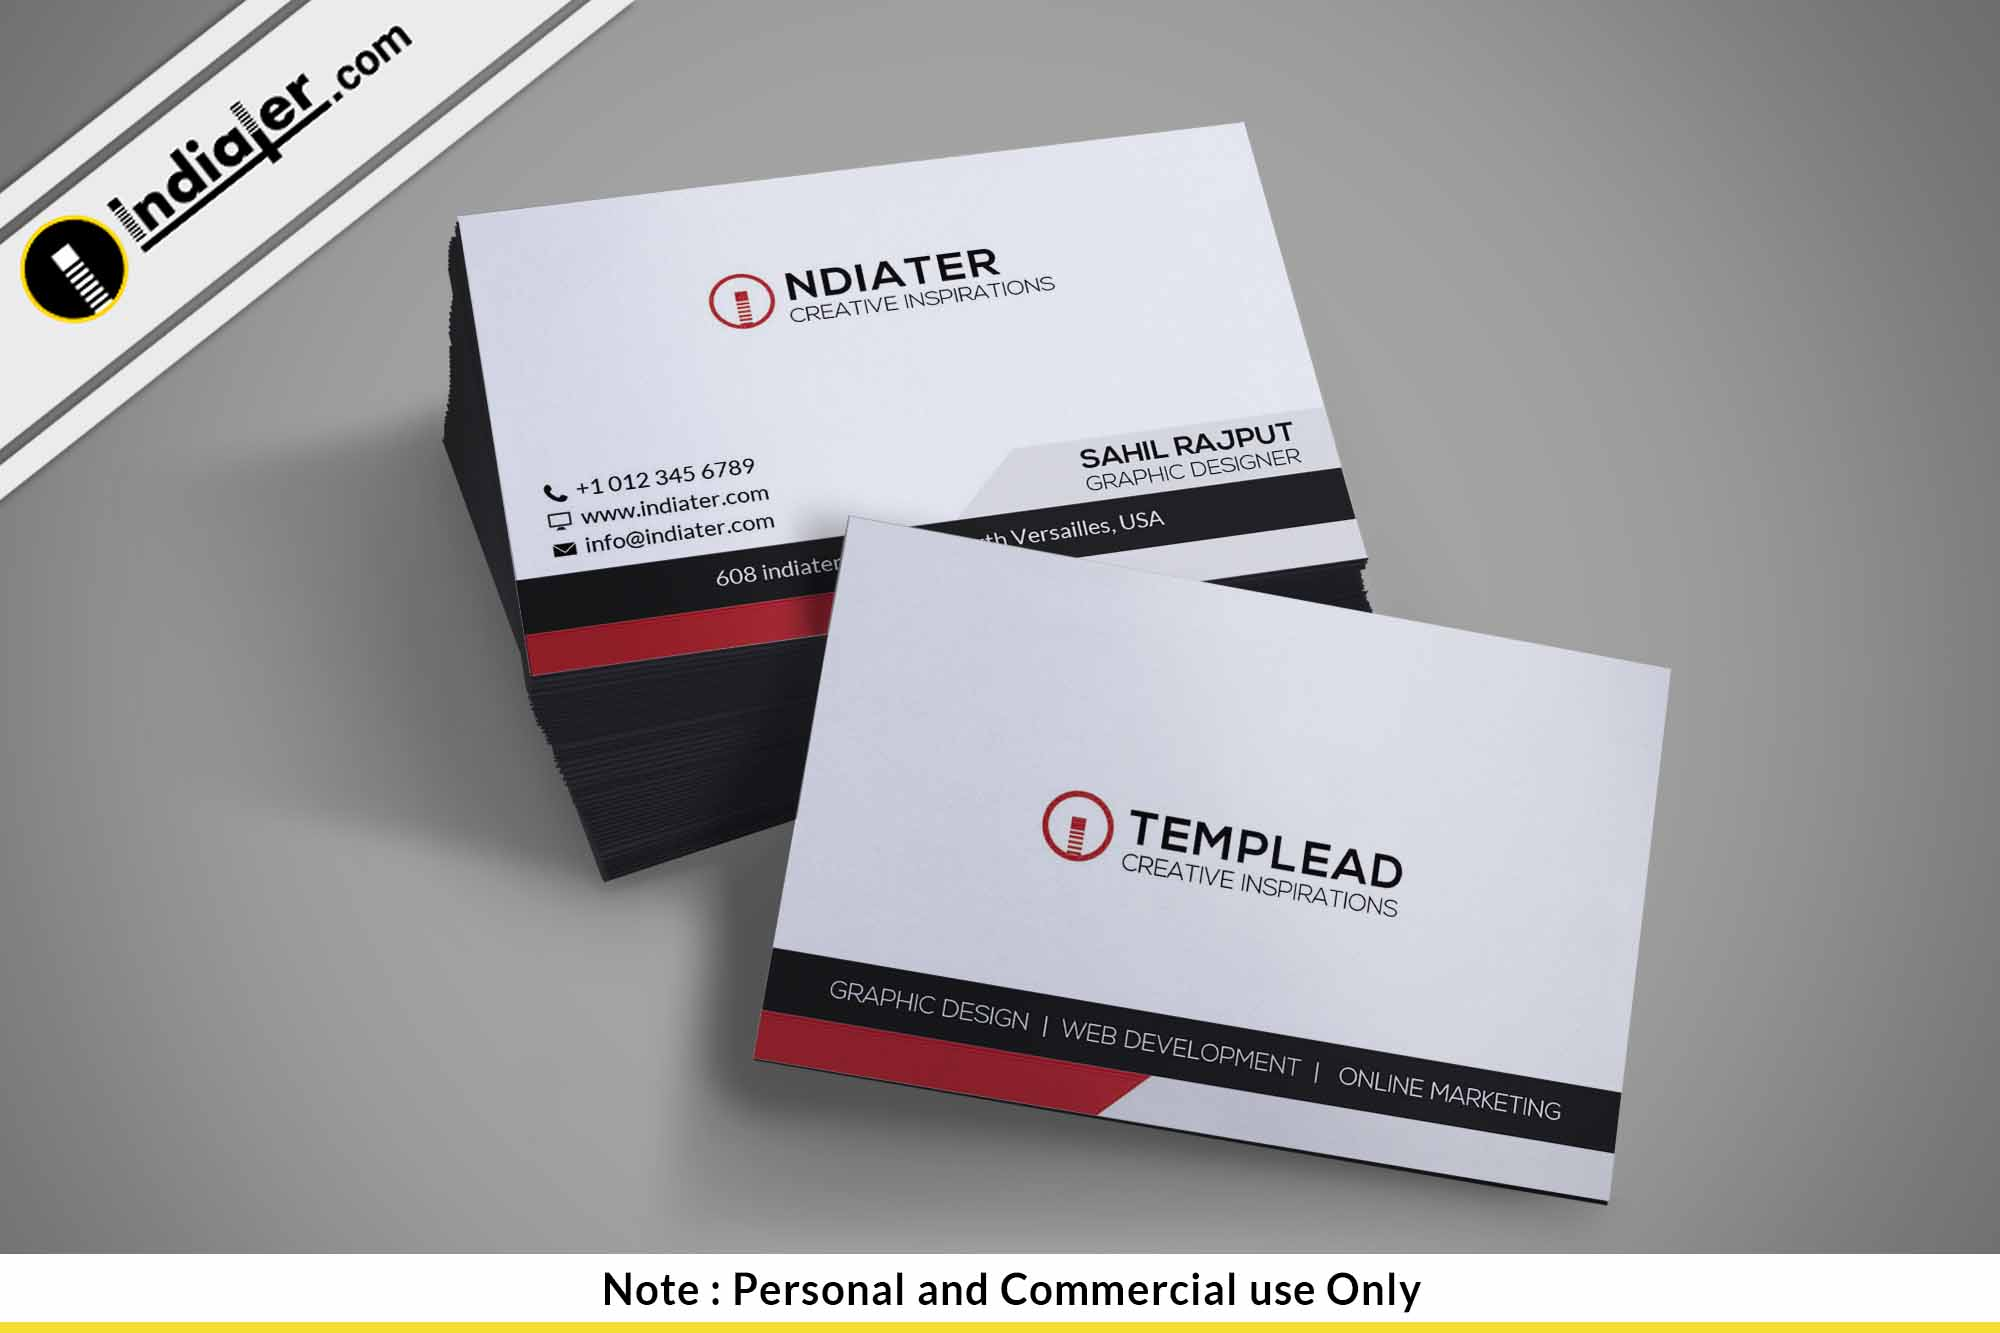 Professional business cards psd template indiater professional business cards psd template reheart Images